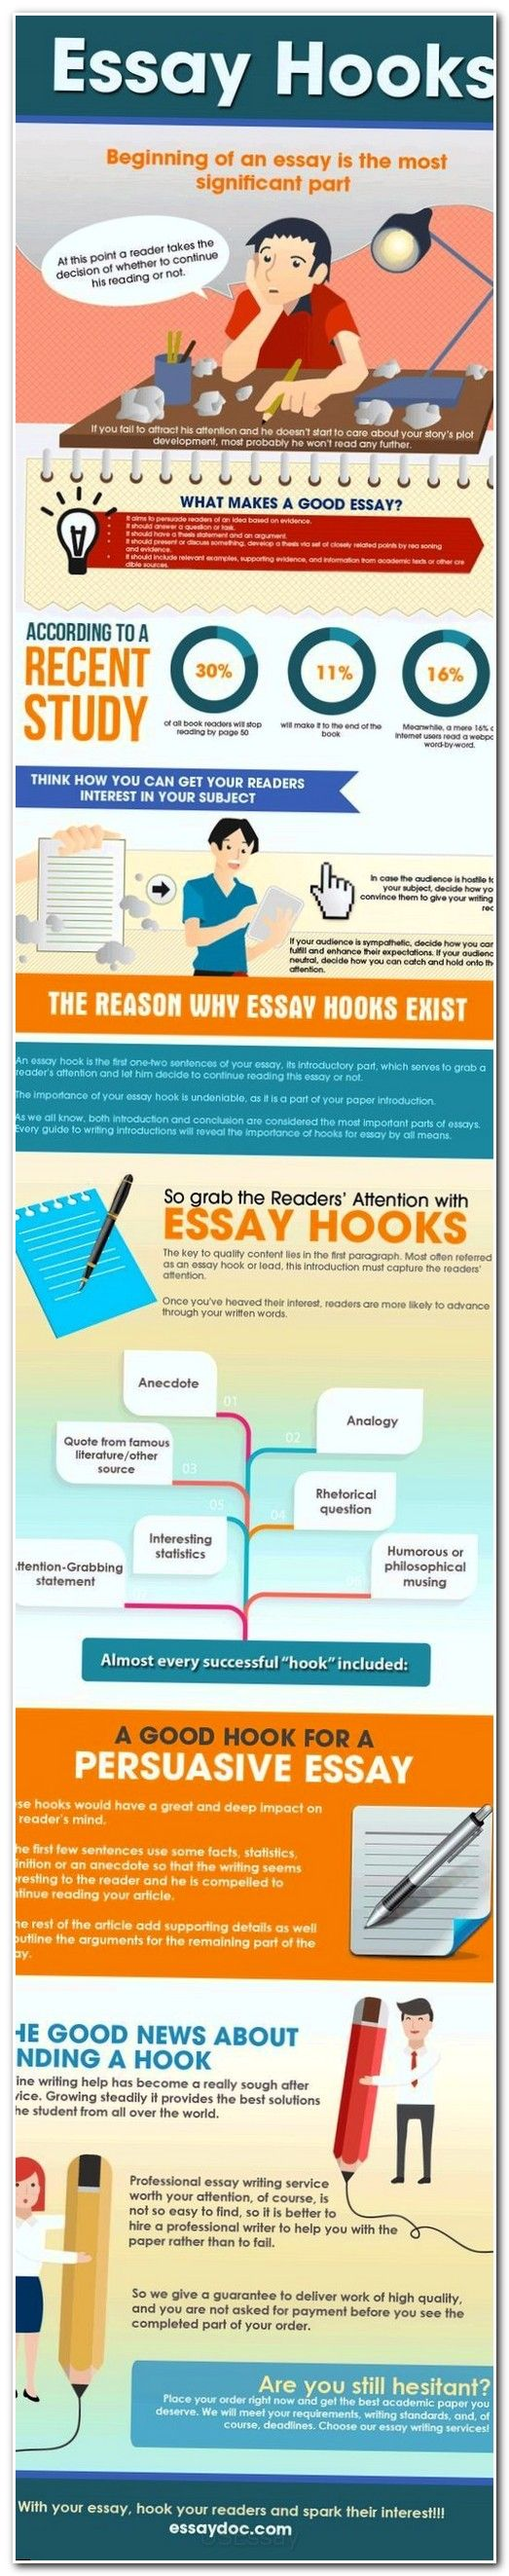 #essay #essaywriting format for a term paper, university experience essay, describing a process essay, abortion is morally wrong essay, pay someone to do my homework for me, what should be included in an introduction paragraph, need an essay written for me, paragraph practice, pay to do my math homework, persuasive speech topics easy, expository essay examples high school, personal statement to apply for university, cause and effect essay on obesity, literary analysis research paper, buy…